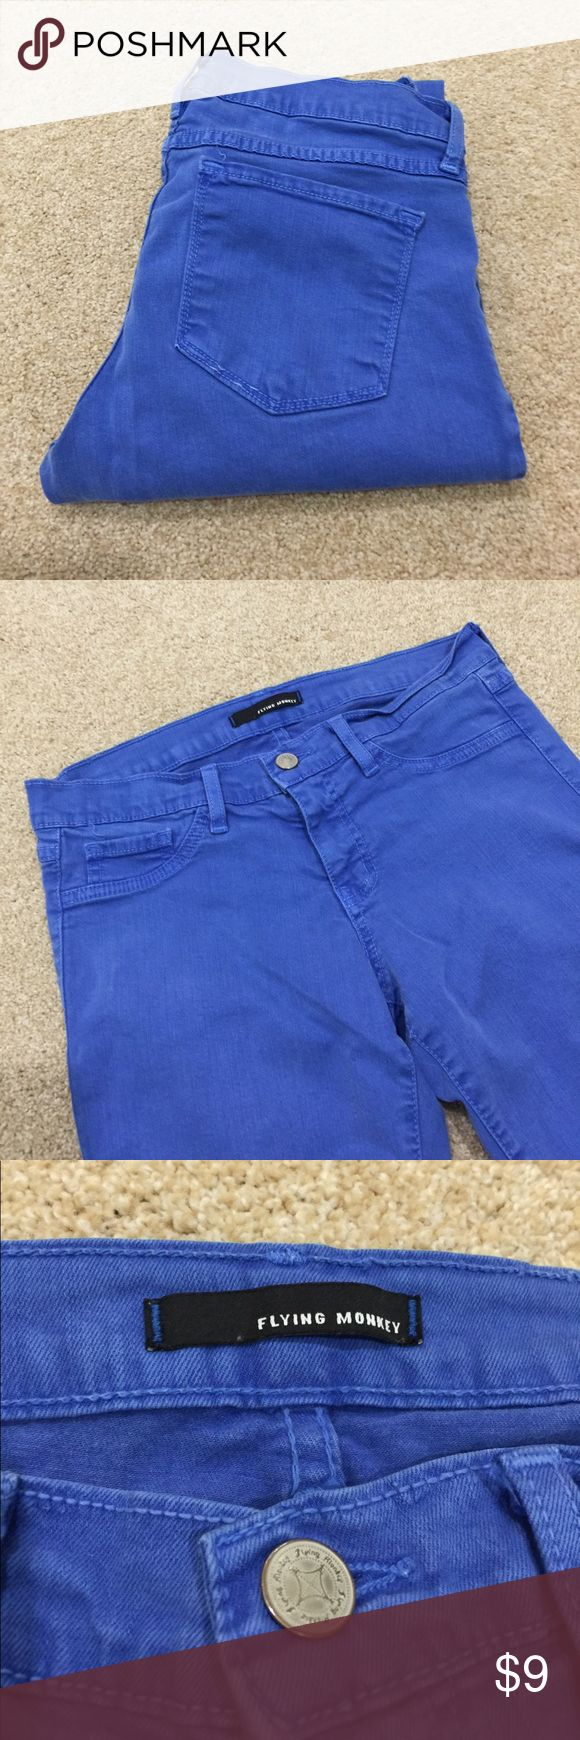 Flying Monkey Jeans Juniors blue Denim Flying Monkey Jeans, Size 9. Good gently used condition. No holes, rips, tears or stains. Have some slight stretch to them. 30% off 3+ items in my closet.  BUNDLE & SAVE!! Flying Monkey Jeans Skinny